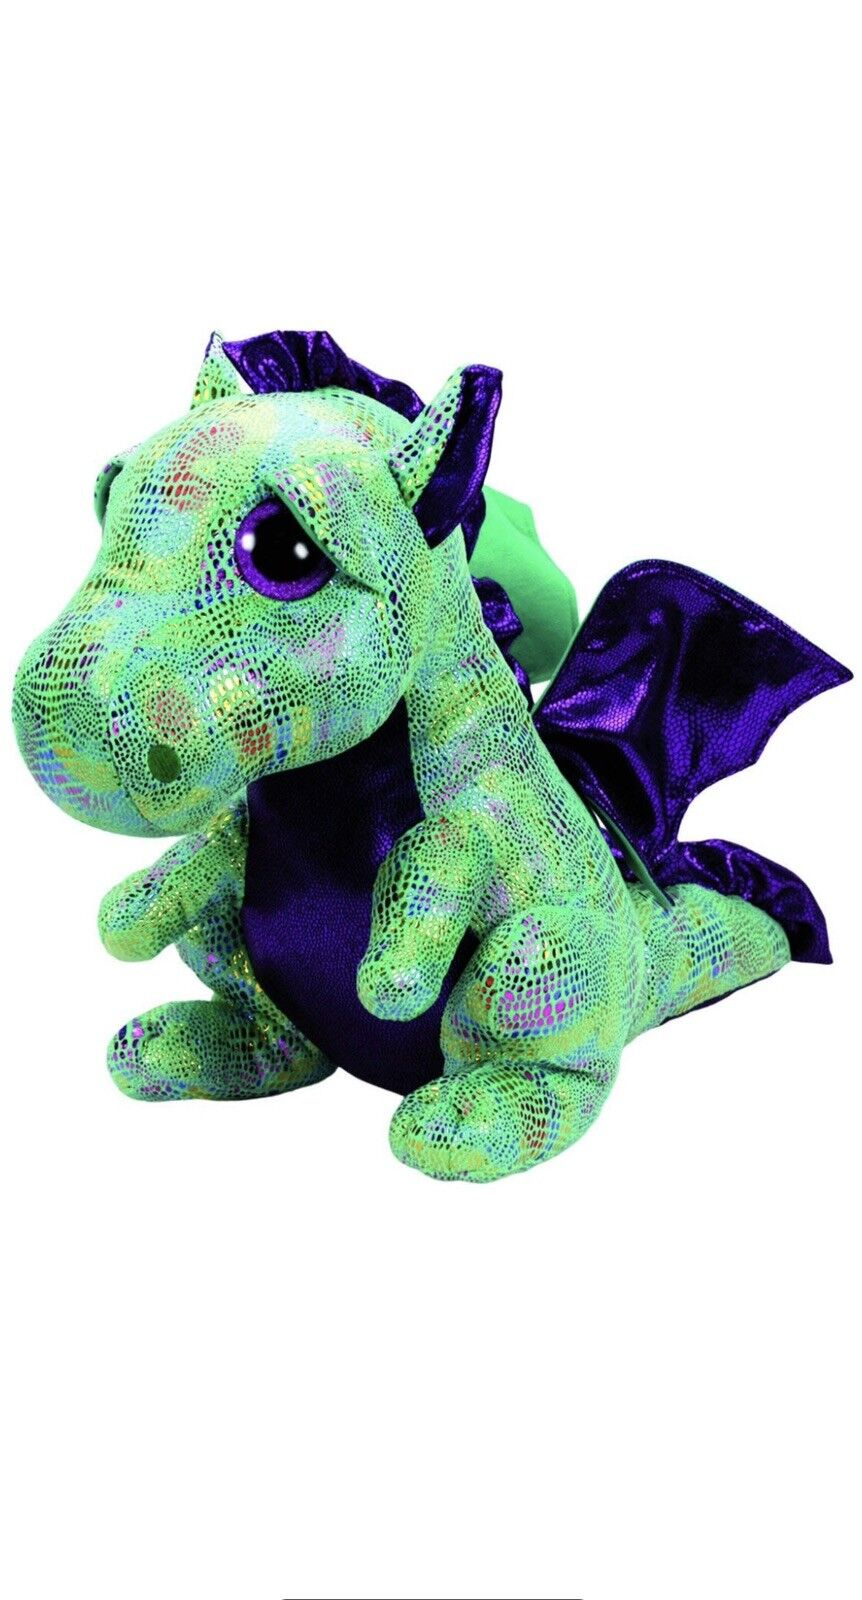 4d02bc452d5 Ty Beanie Babies 37099 Boos Cinder The Dragon Large Boo Buddy for ...